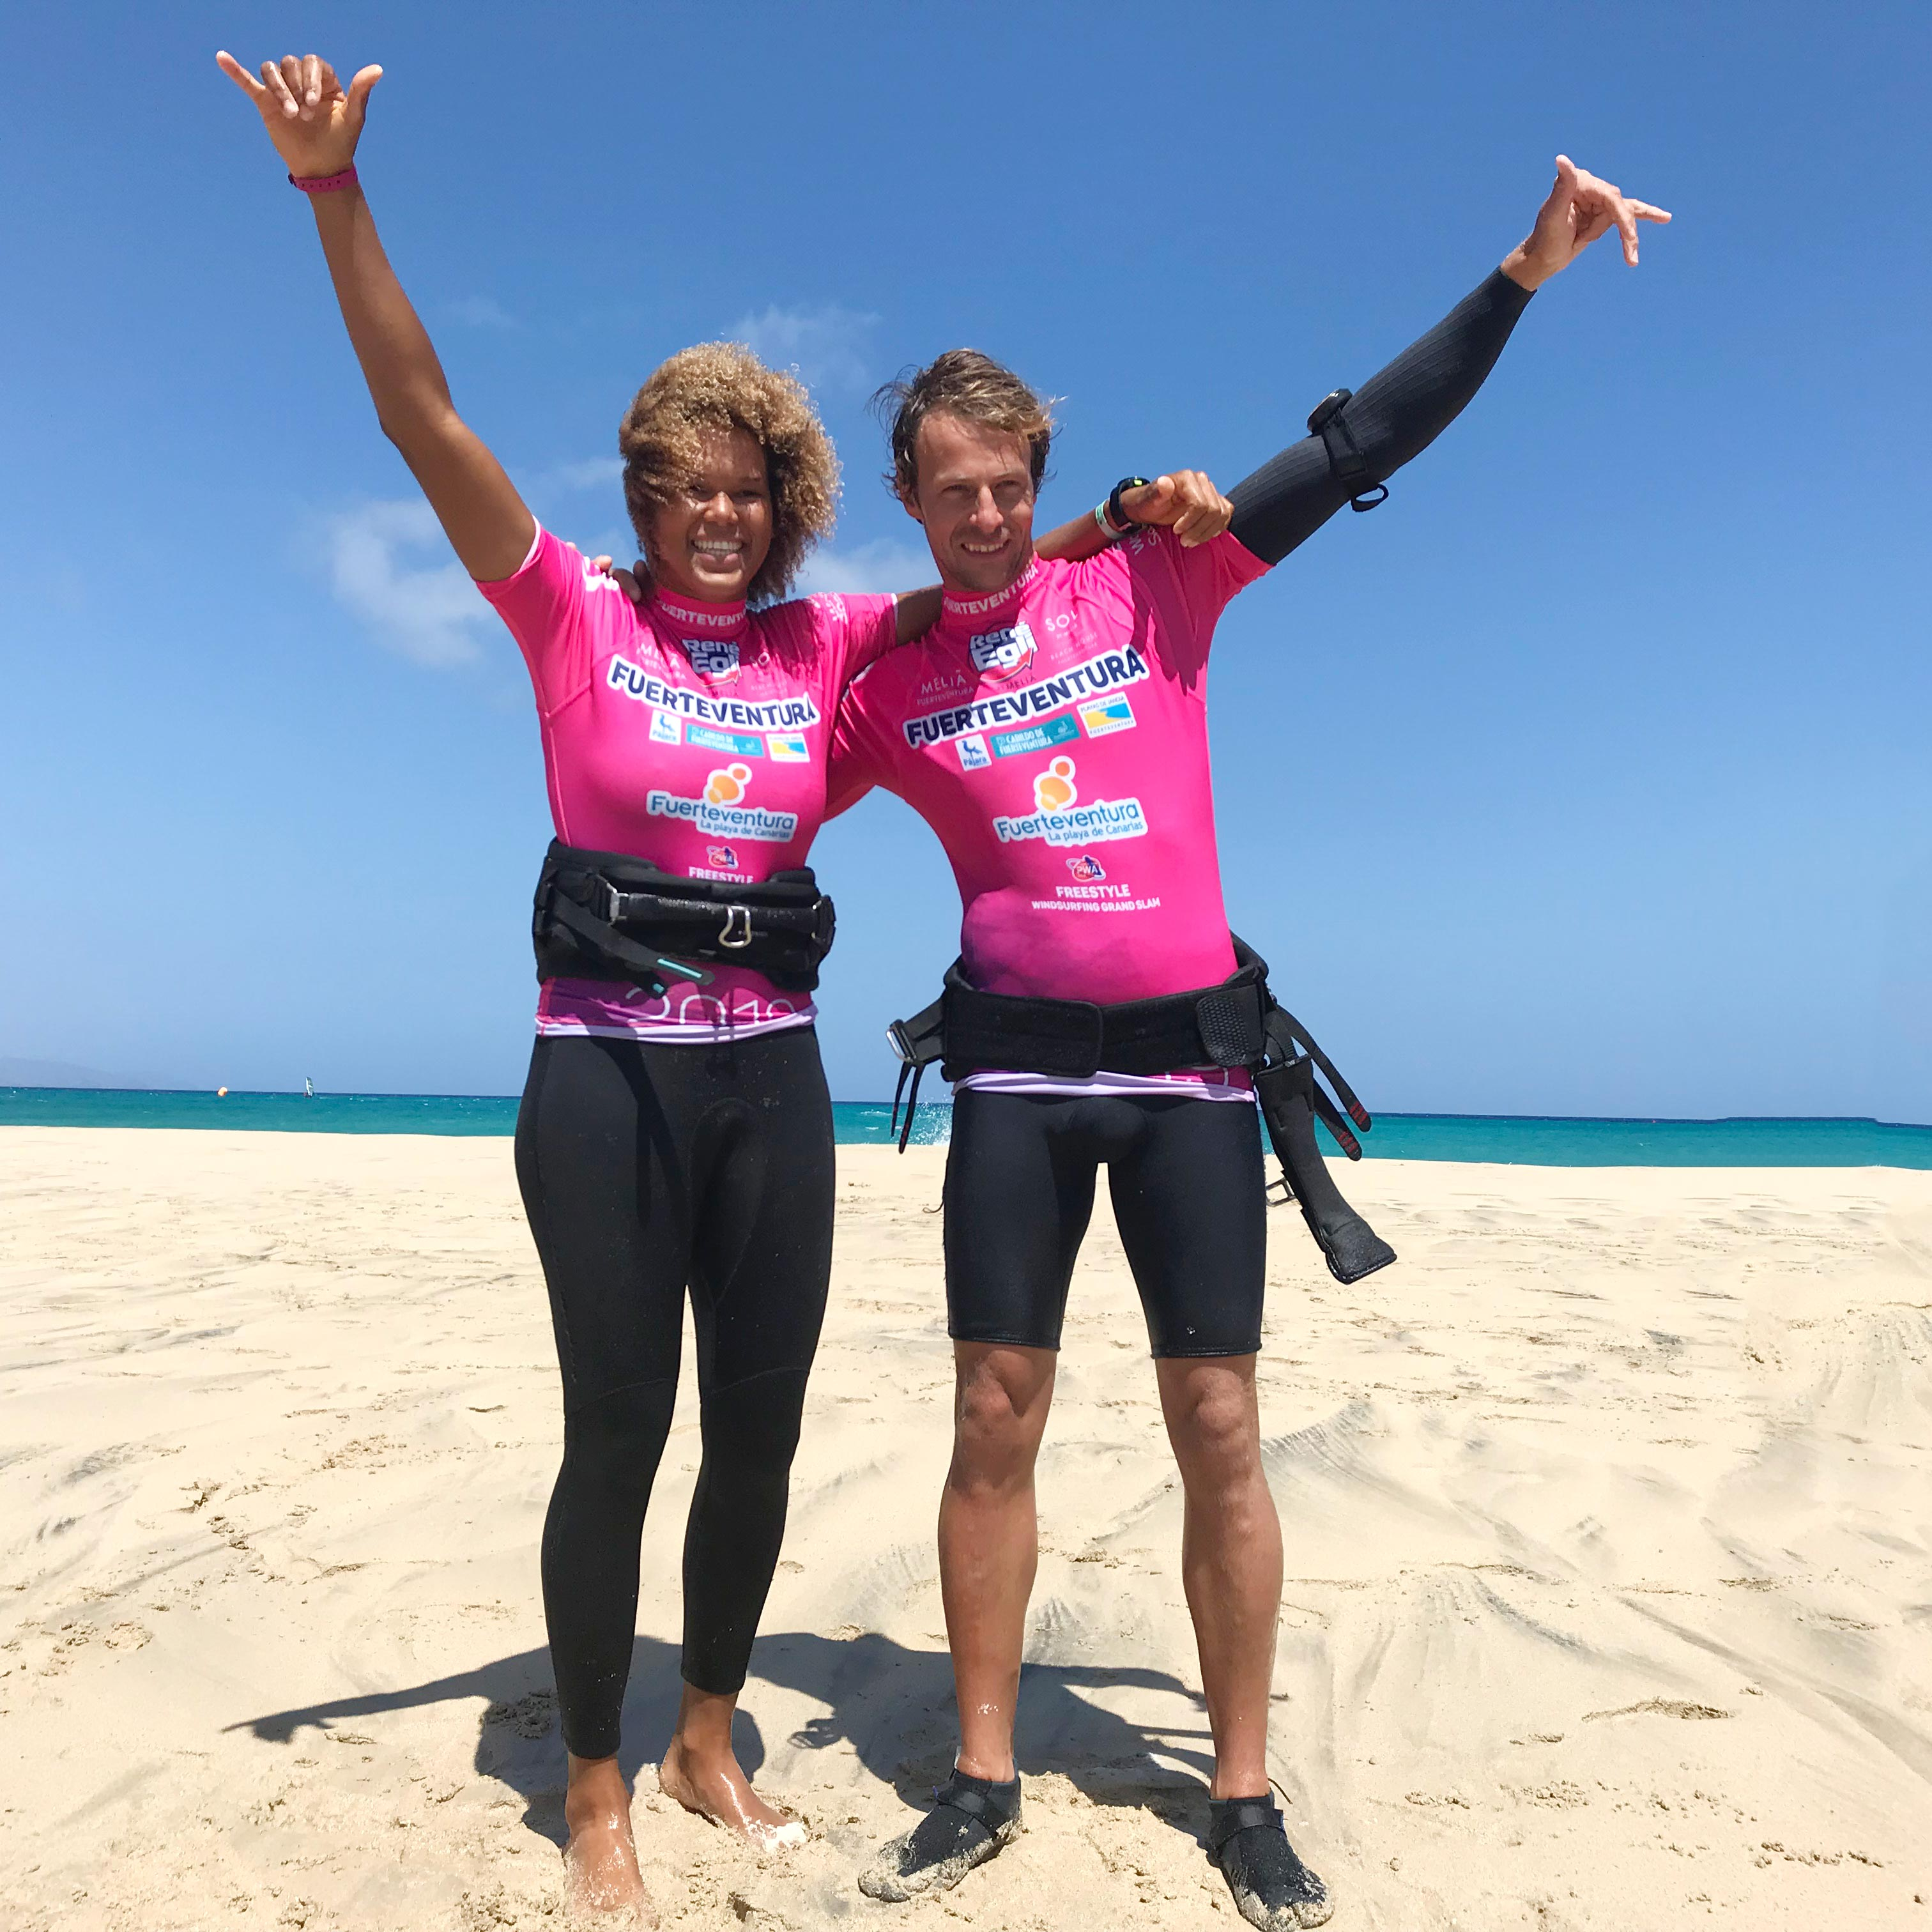 The winners of the single elimination - Sarah-Quita Offringa and Steven van Broeckhoven